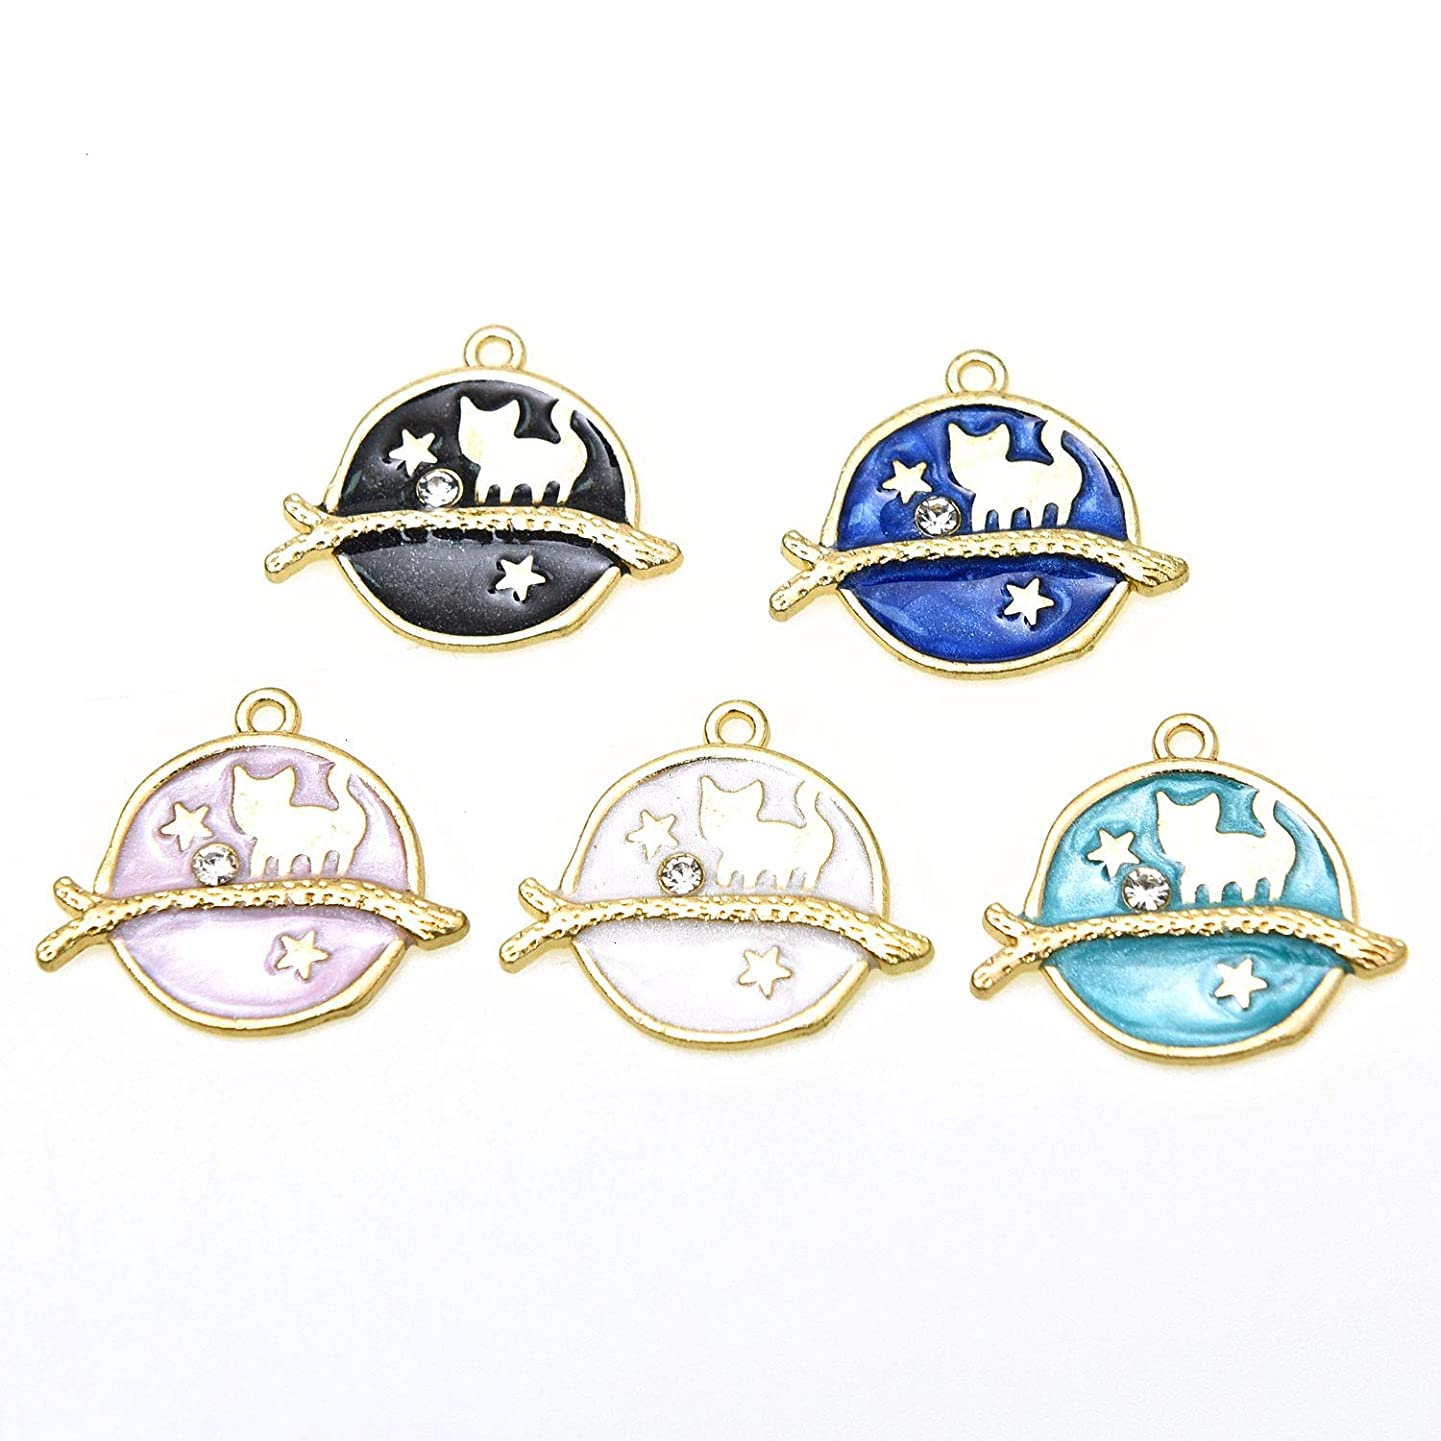 Monrocco 20Pcs Enamel Cute Cat Earth Star Charms Pendant Alloy Charms for Hook Earrings Necklace Jewelry Making Charms